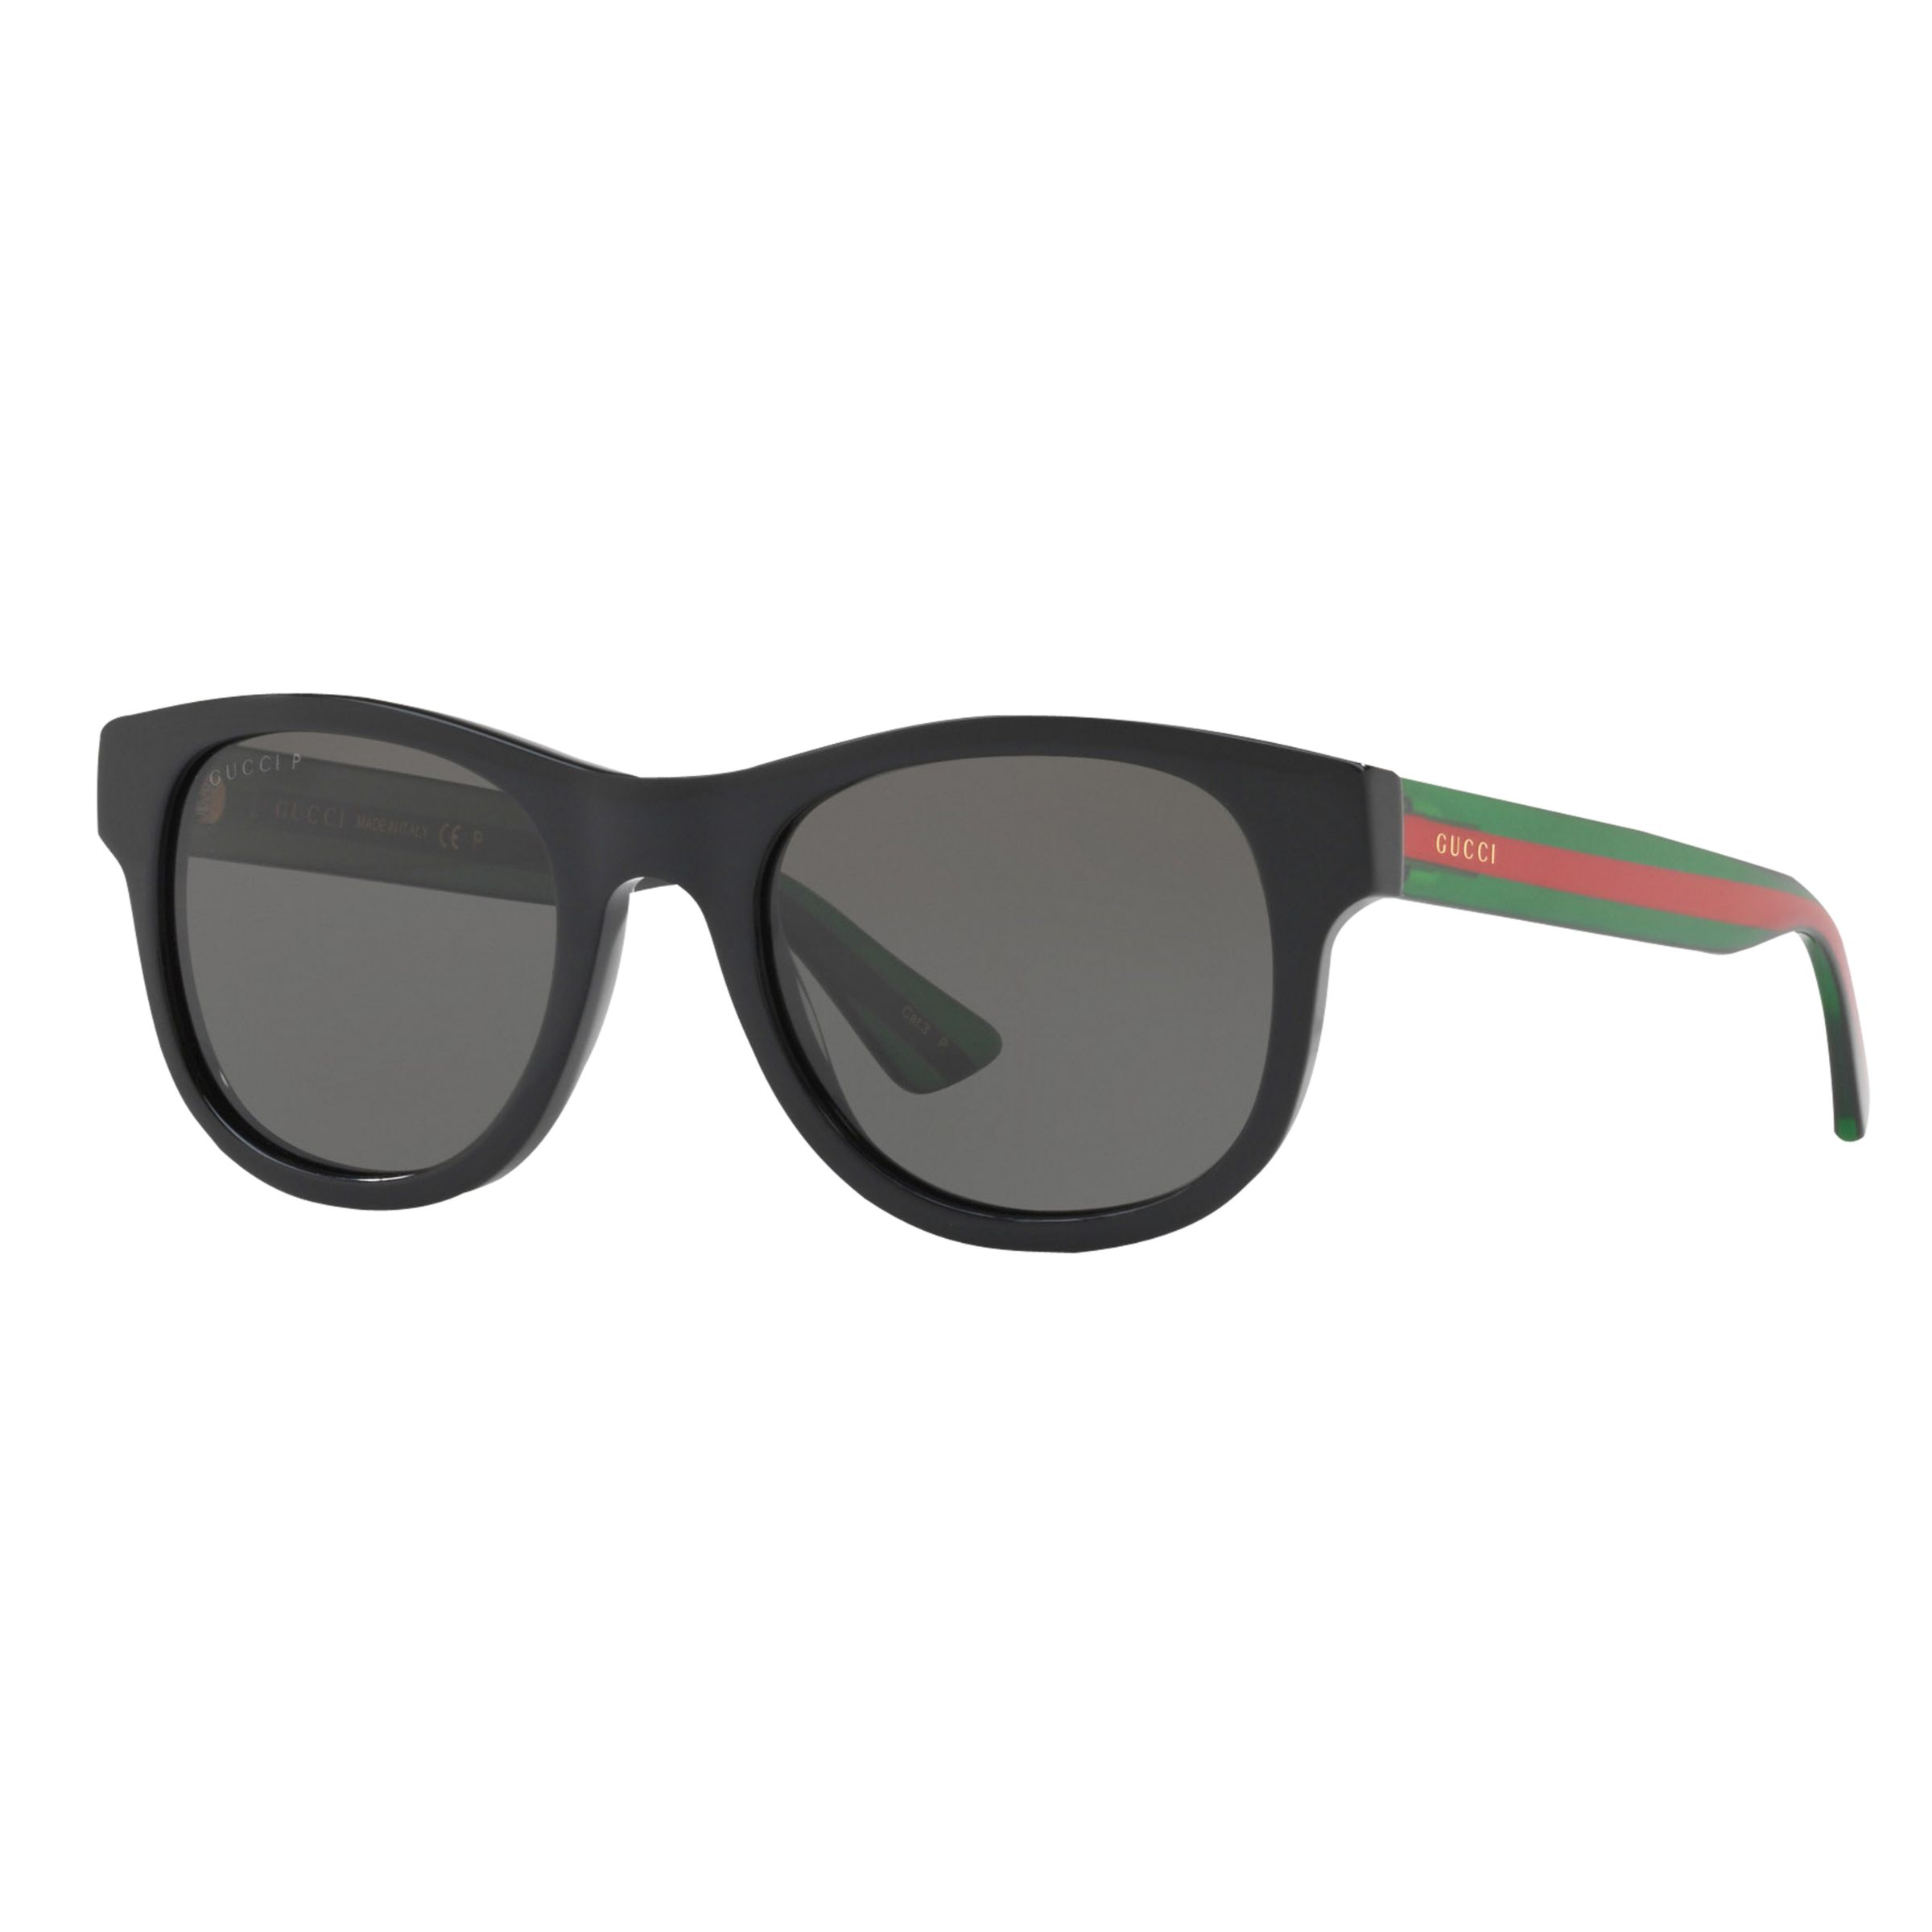 6828d7936414a Gucci GG0003S D-Frame Sunglasses at John Lewis   Partners